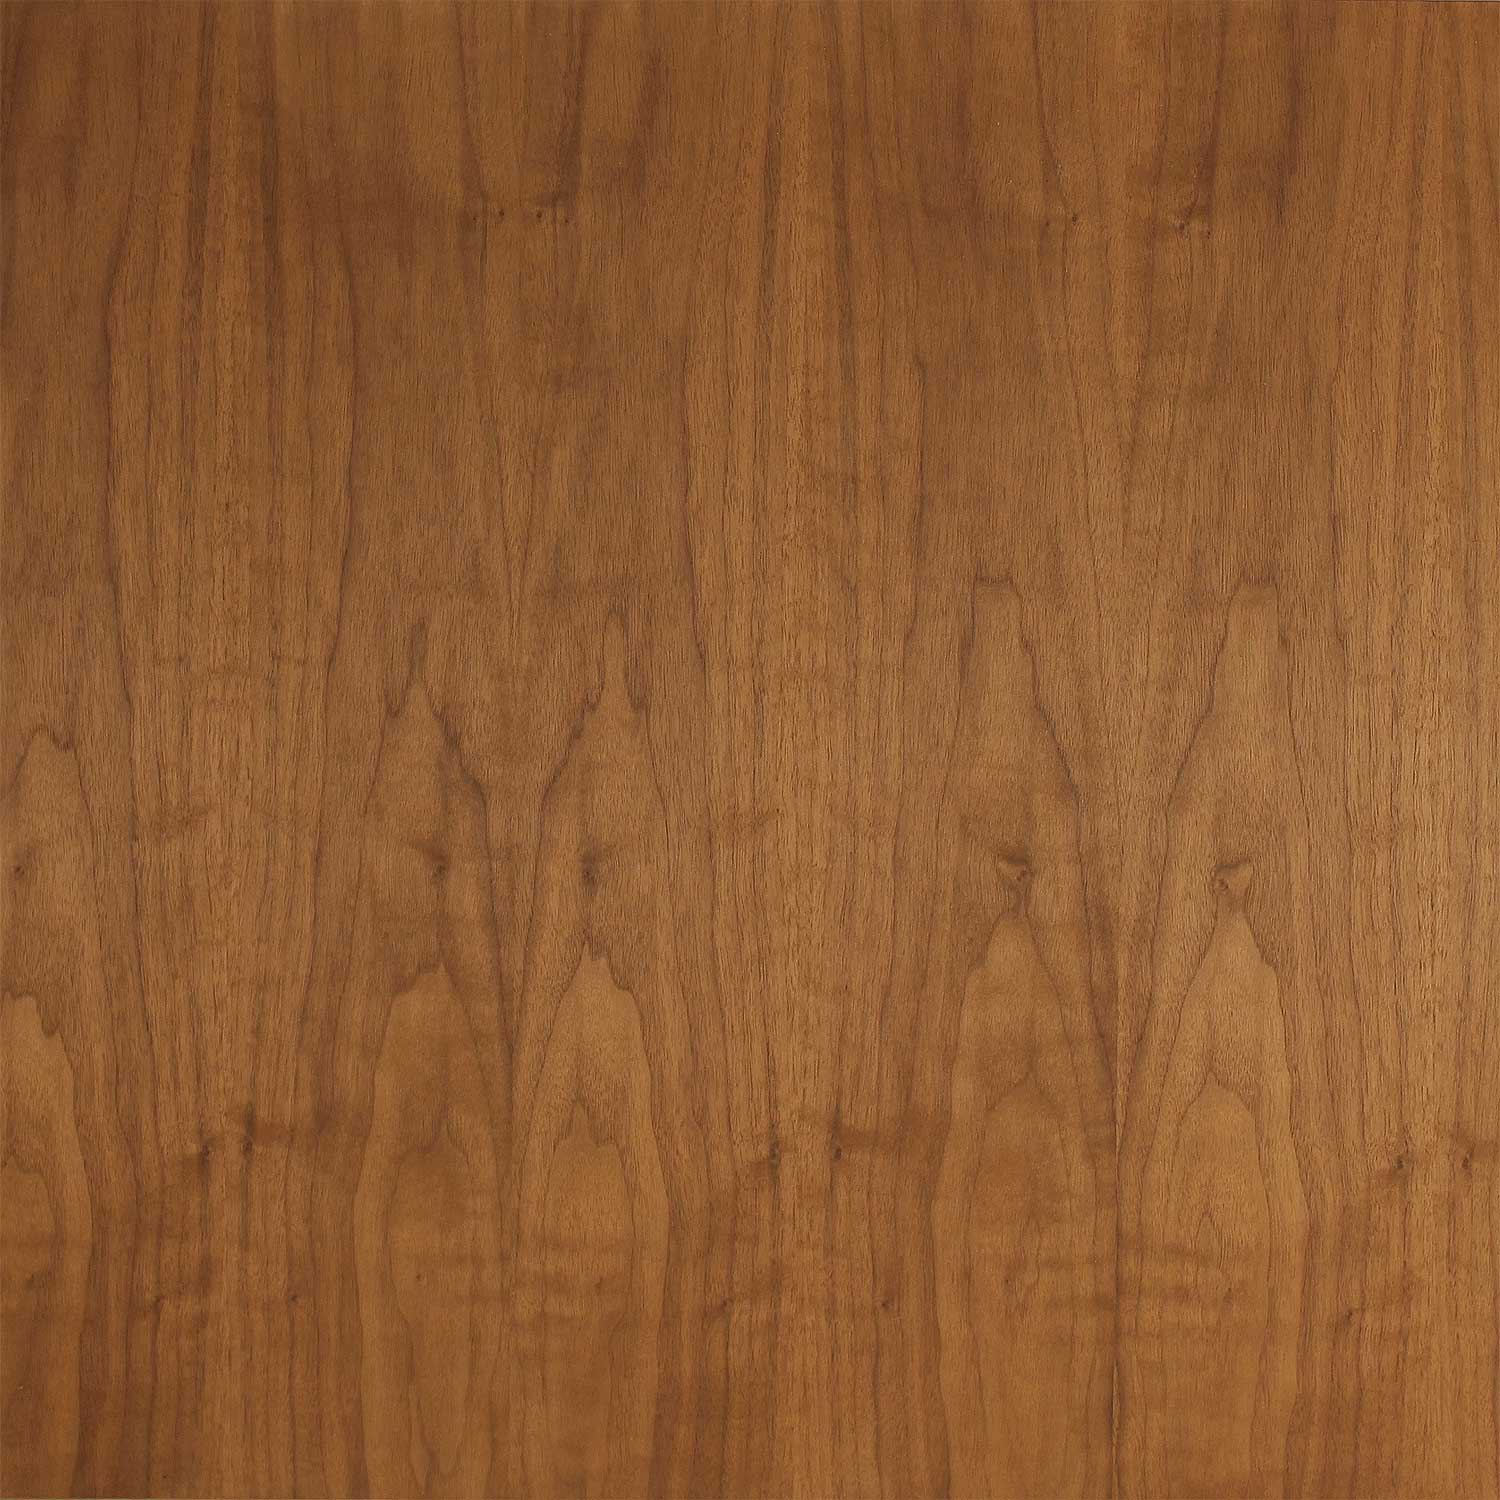 new images for 14 235012 american walnut veneer related suggestions